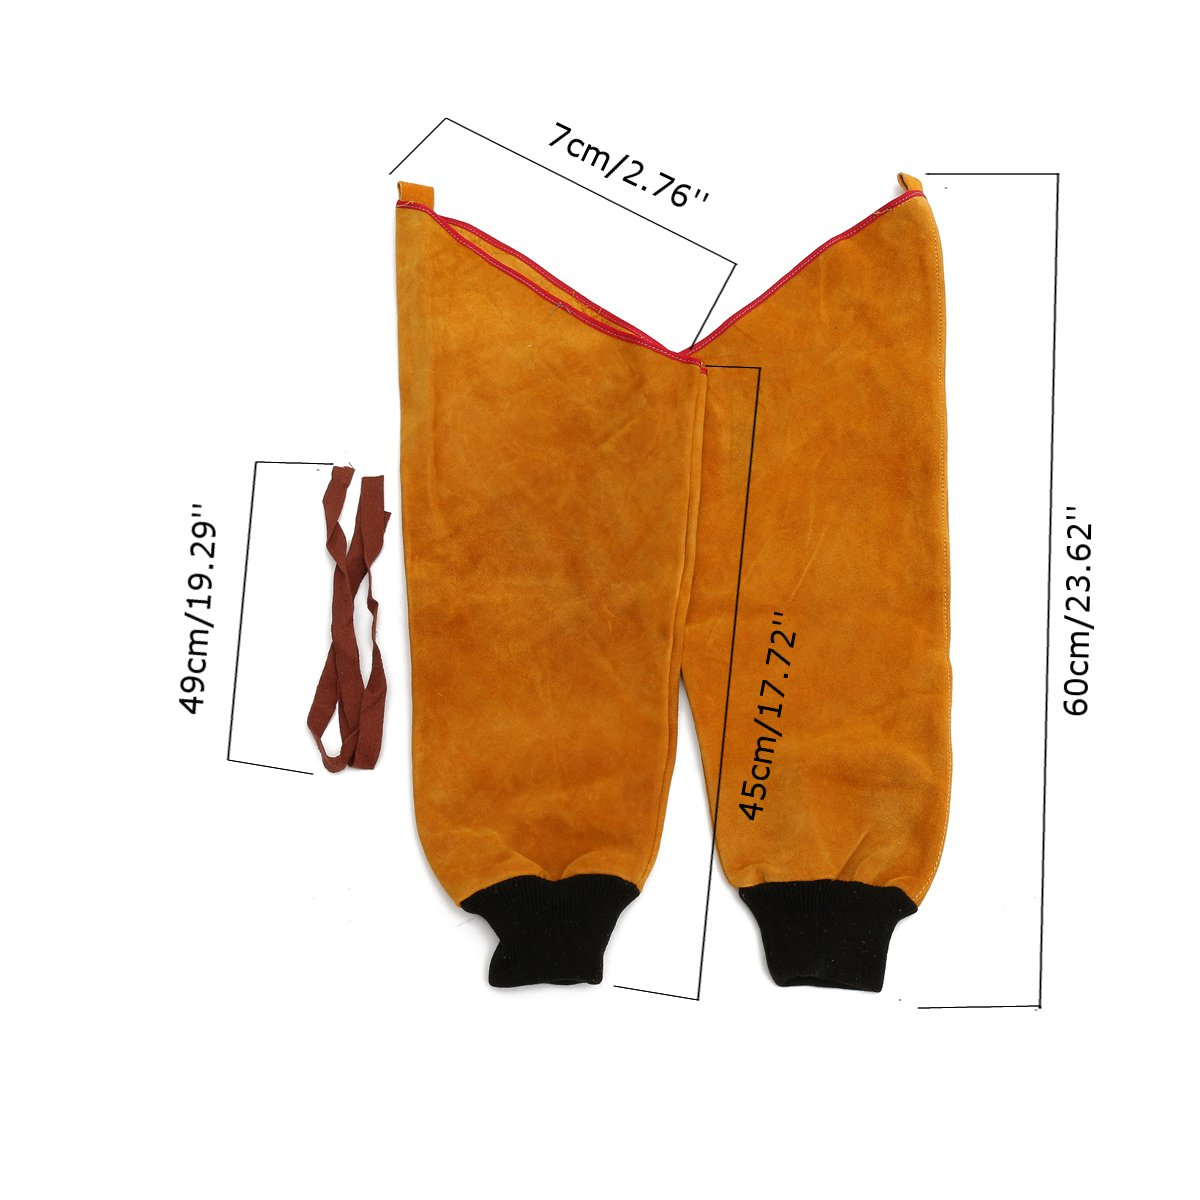 1 Pair Cow Leather Welding Sleeves with Elastic Cuff Protect Welder Leather Sleeves